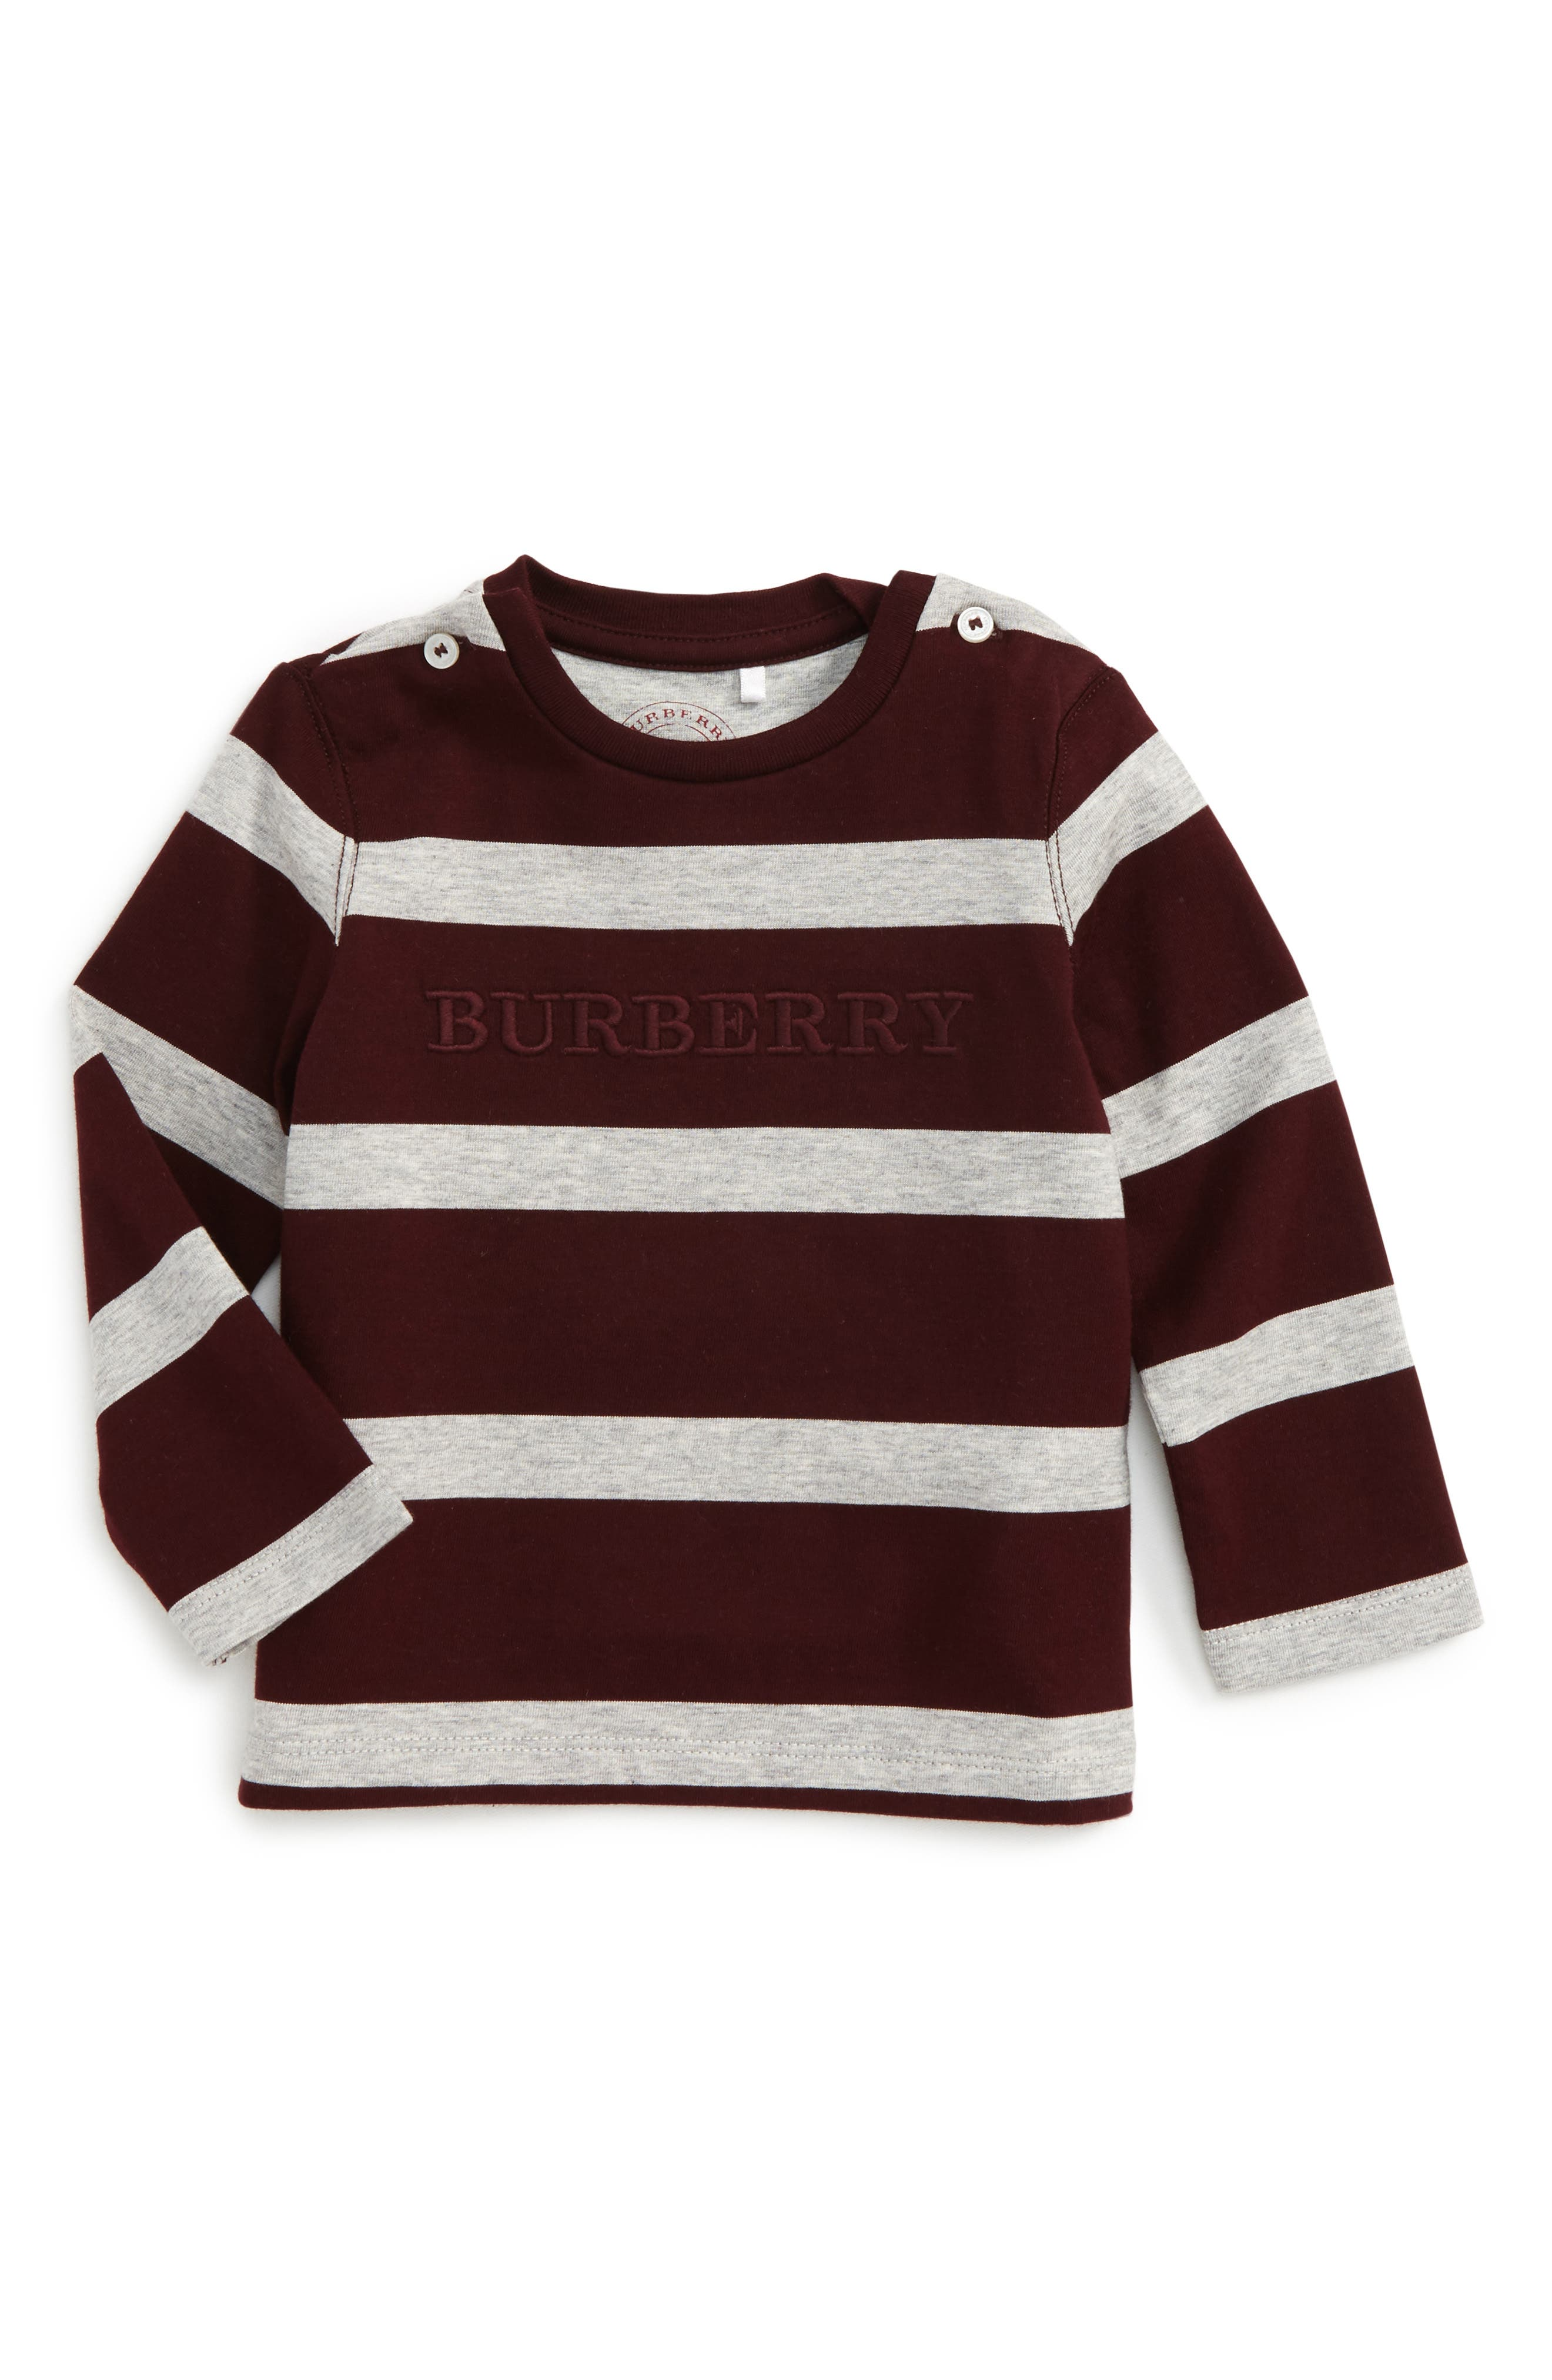 Alternate Image 1 Selected - Burberry Mathew Stripe T-Shirt (Baby Boys)